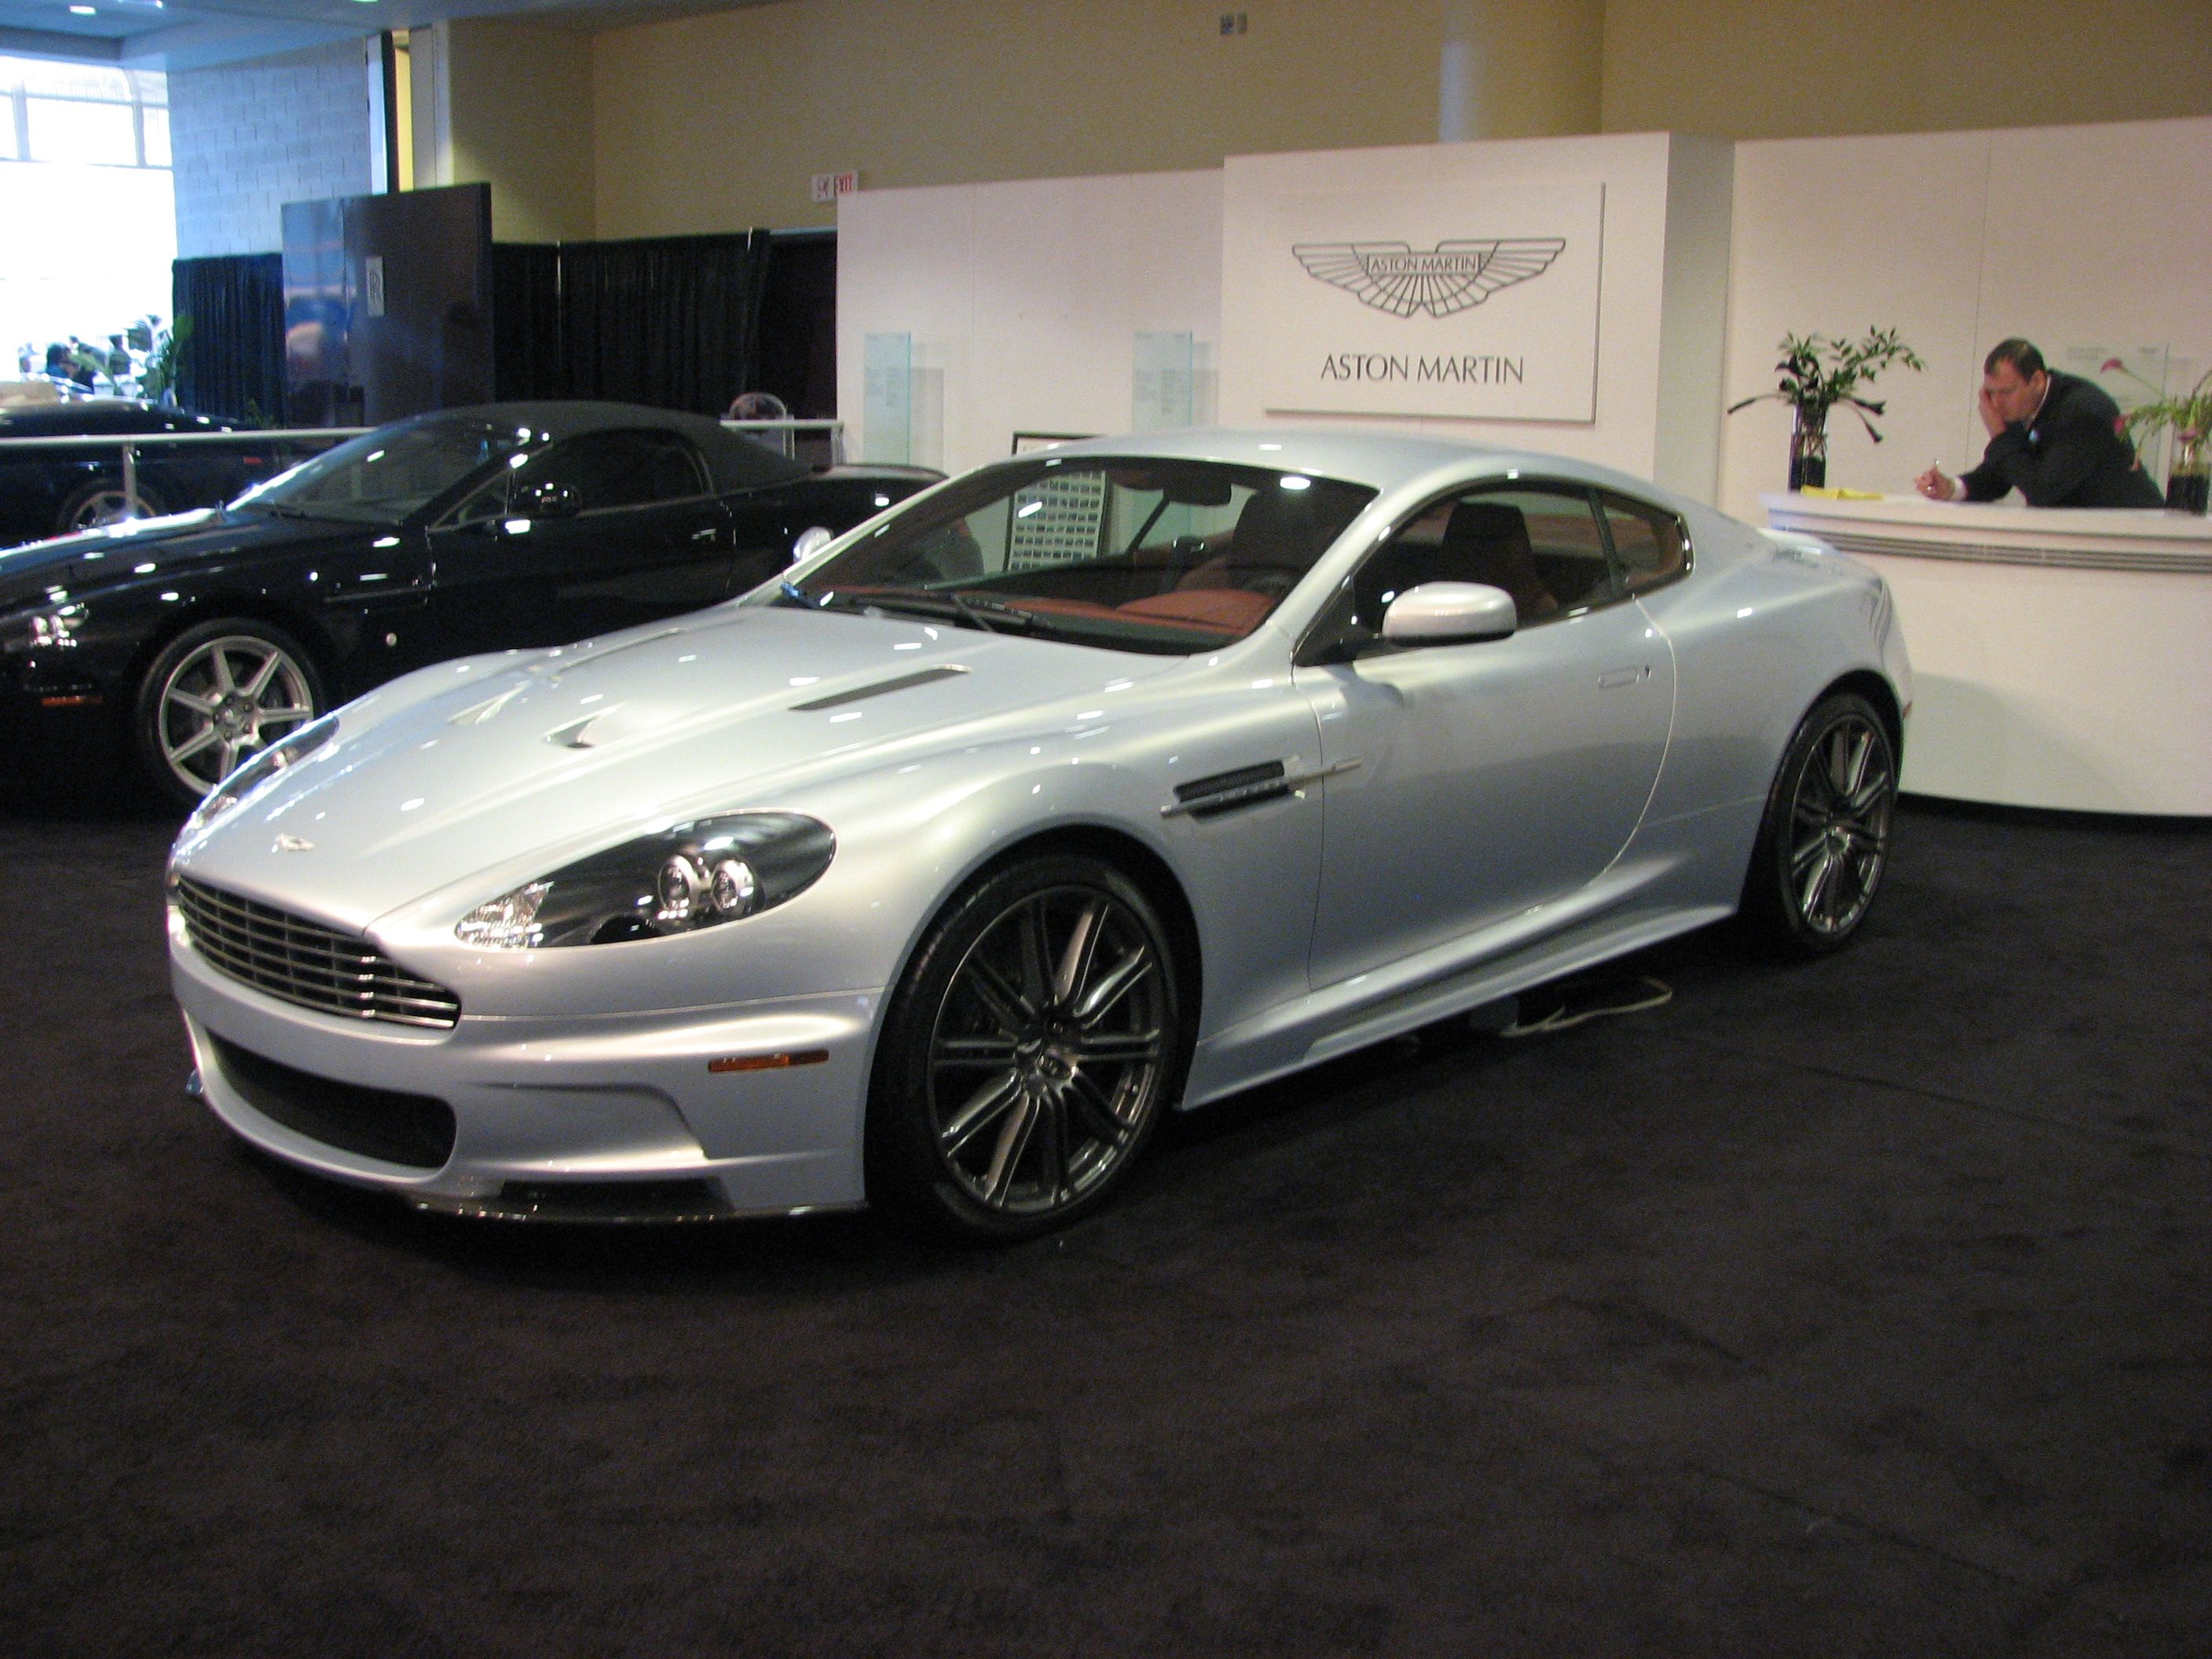 Aston Martin DBS Aston Martin DBS Wallpapers – Top Car Magazine